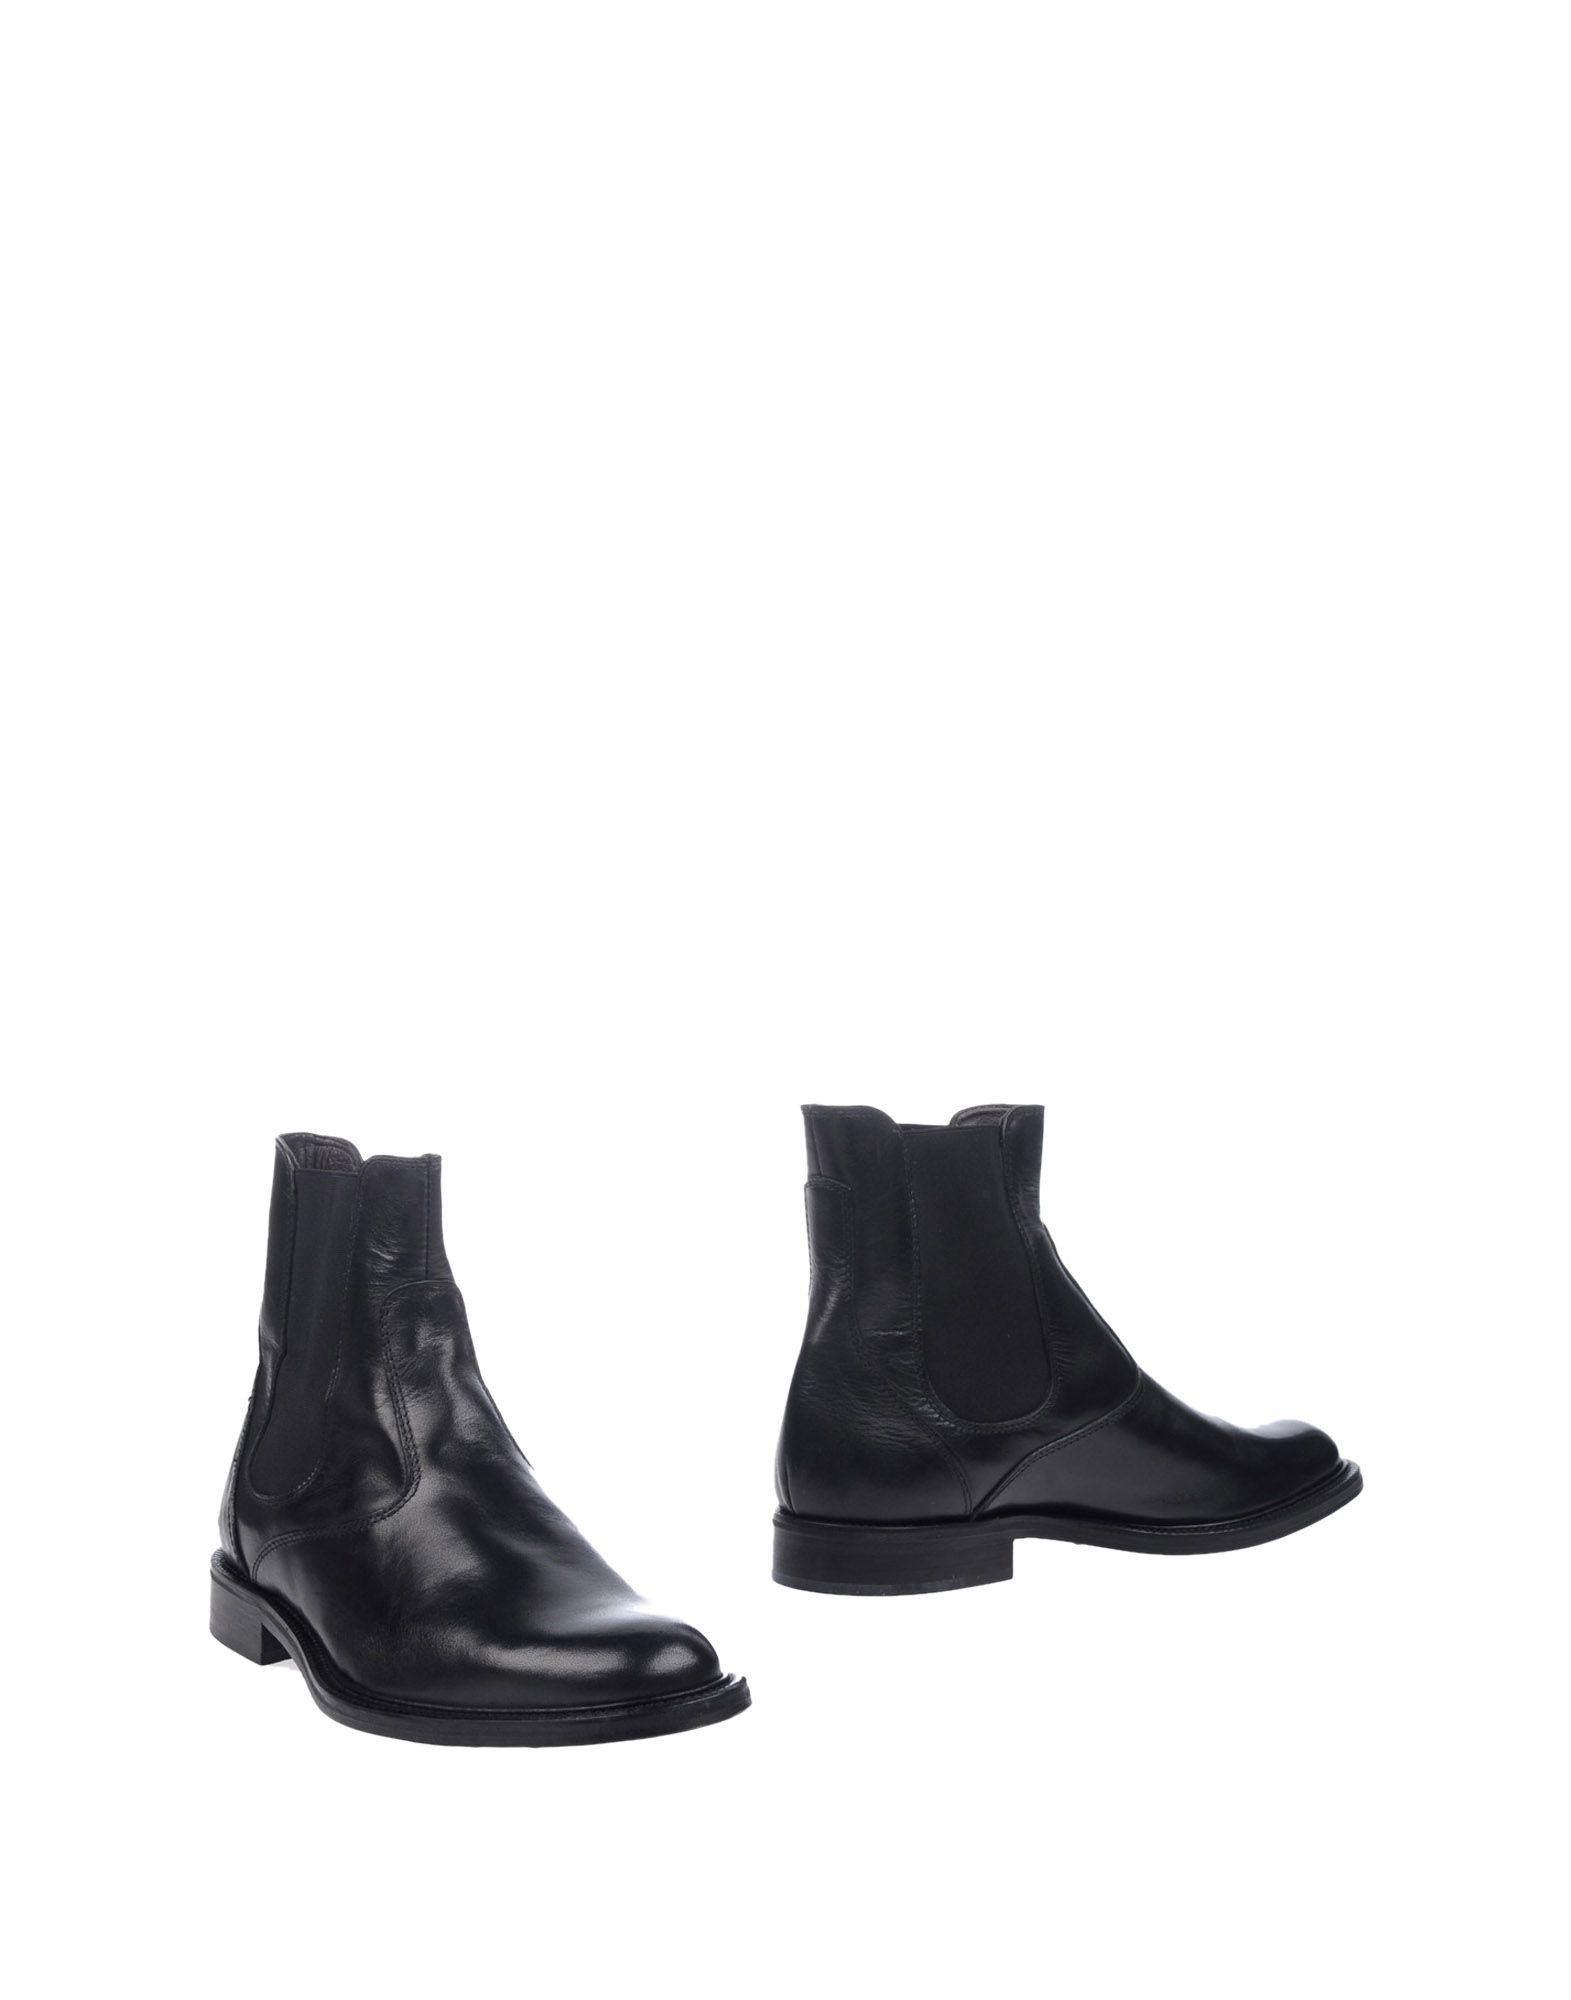 Reliable For Sale FOOTWEAR - Ankle boots Daniele Alessandrini Outlet Cheap U1mxL